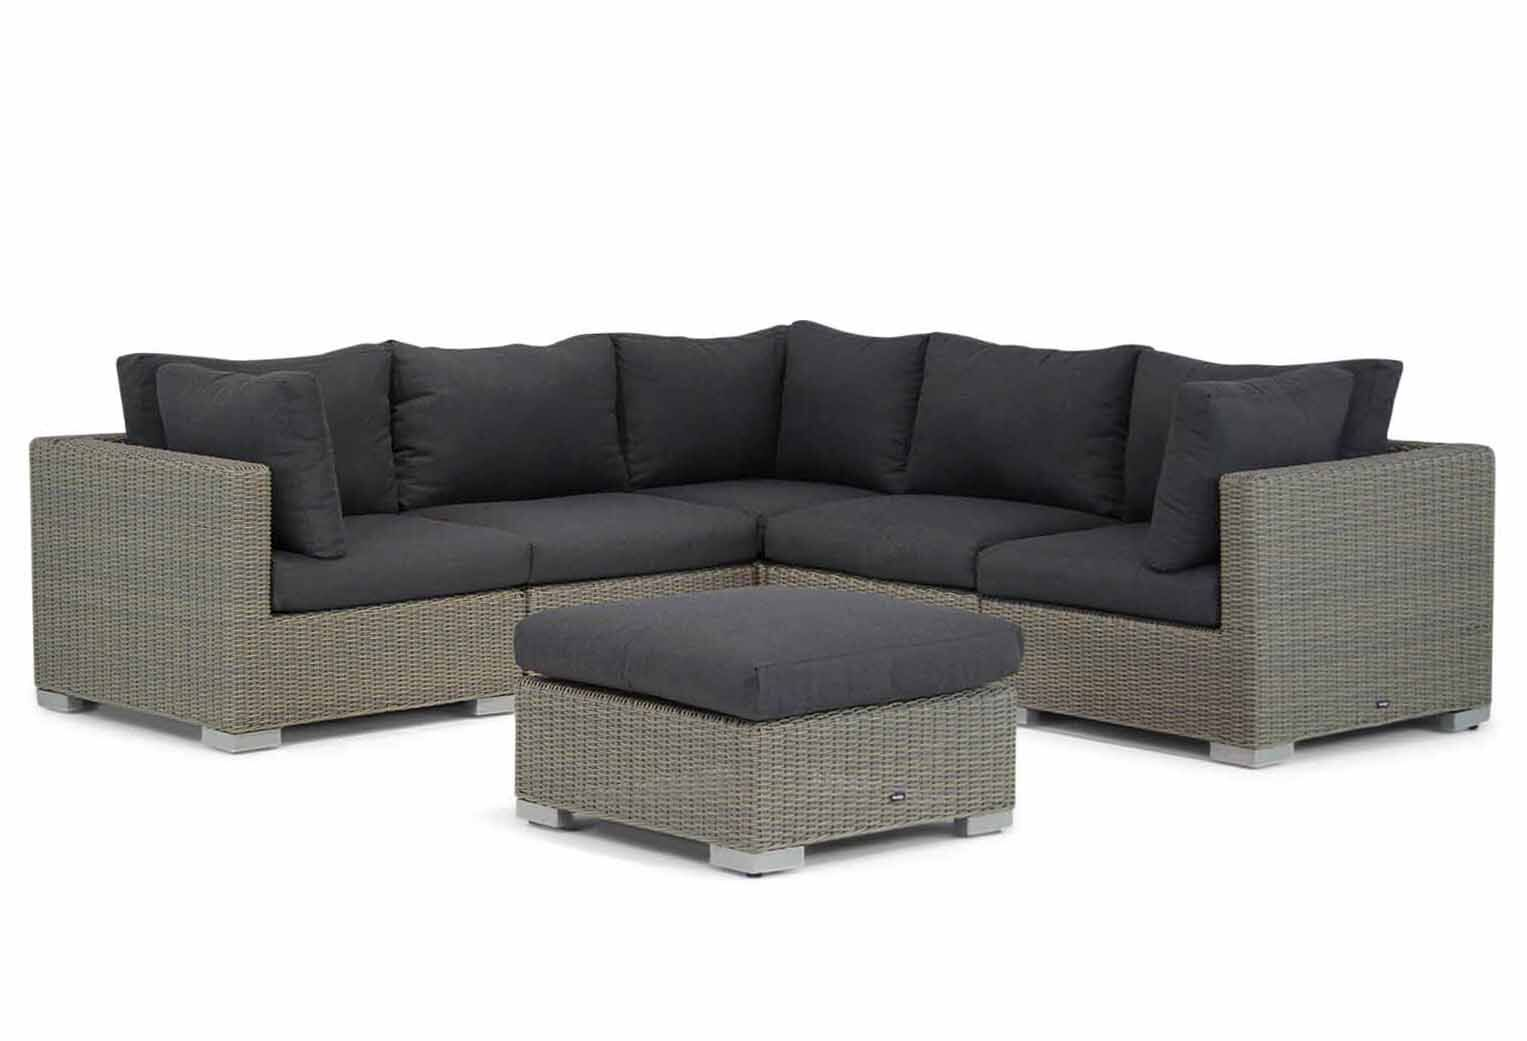 Garden Collections Cuba hoek loungeset 6-delig